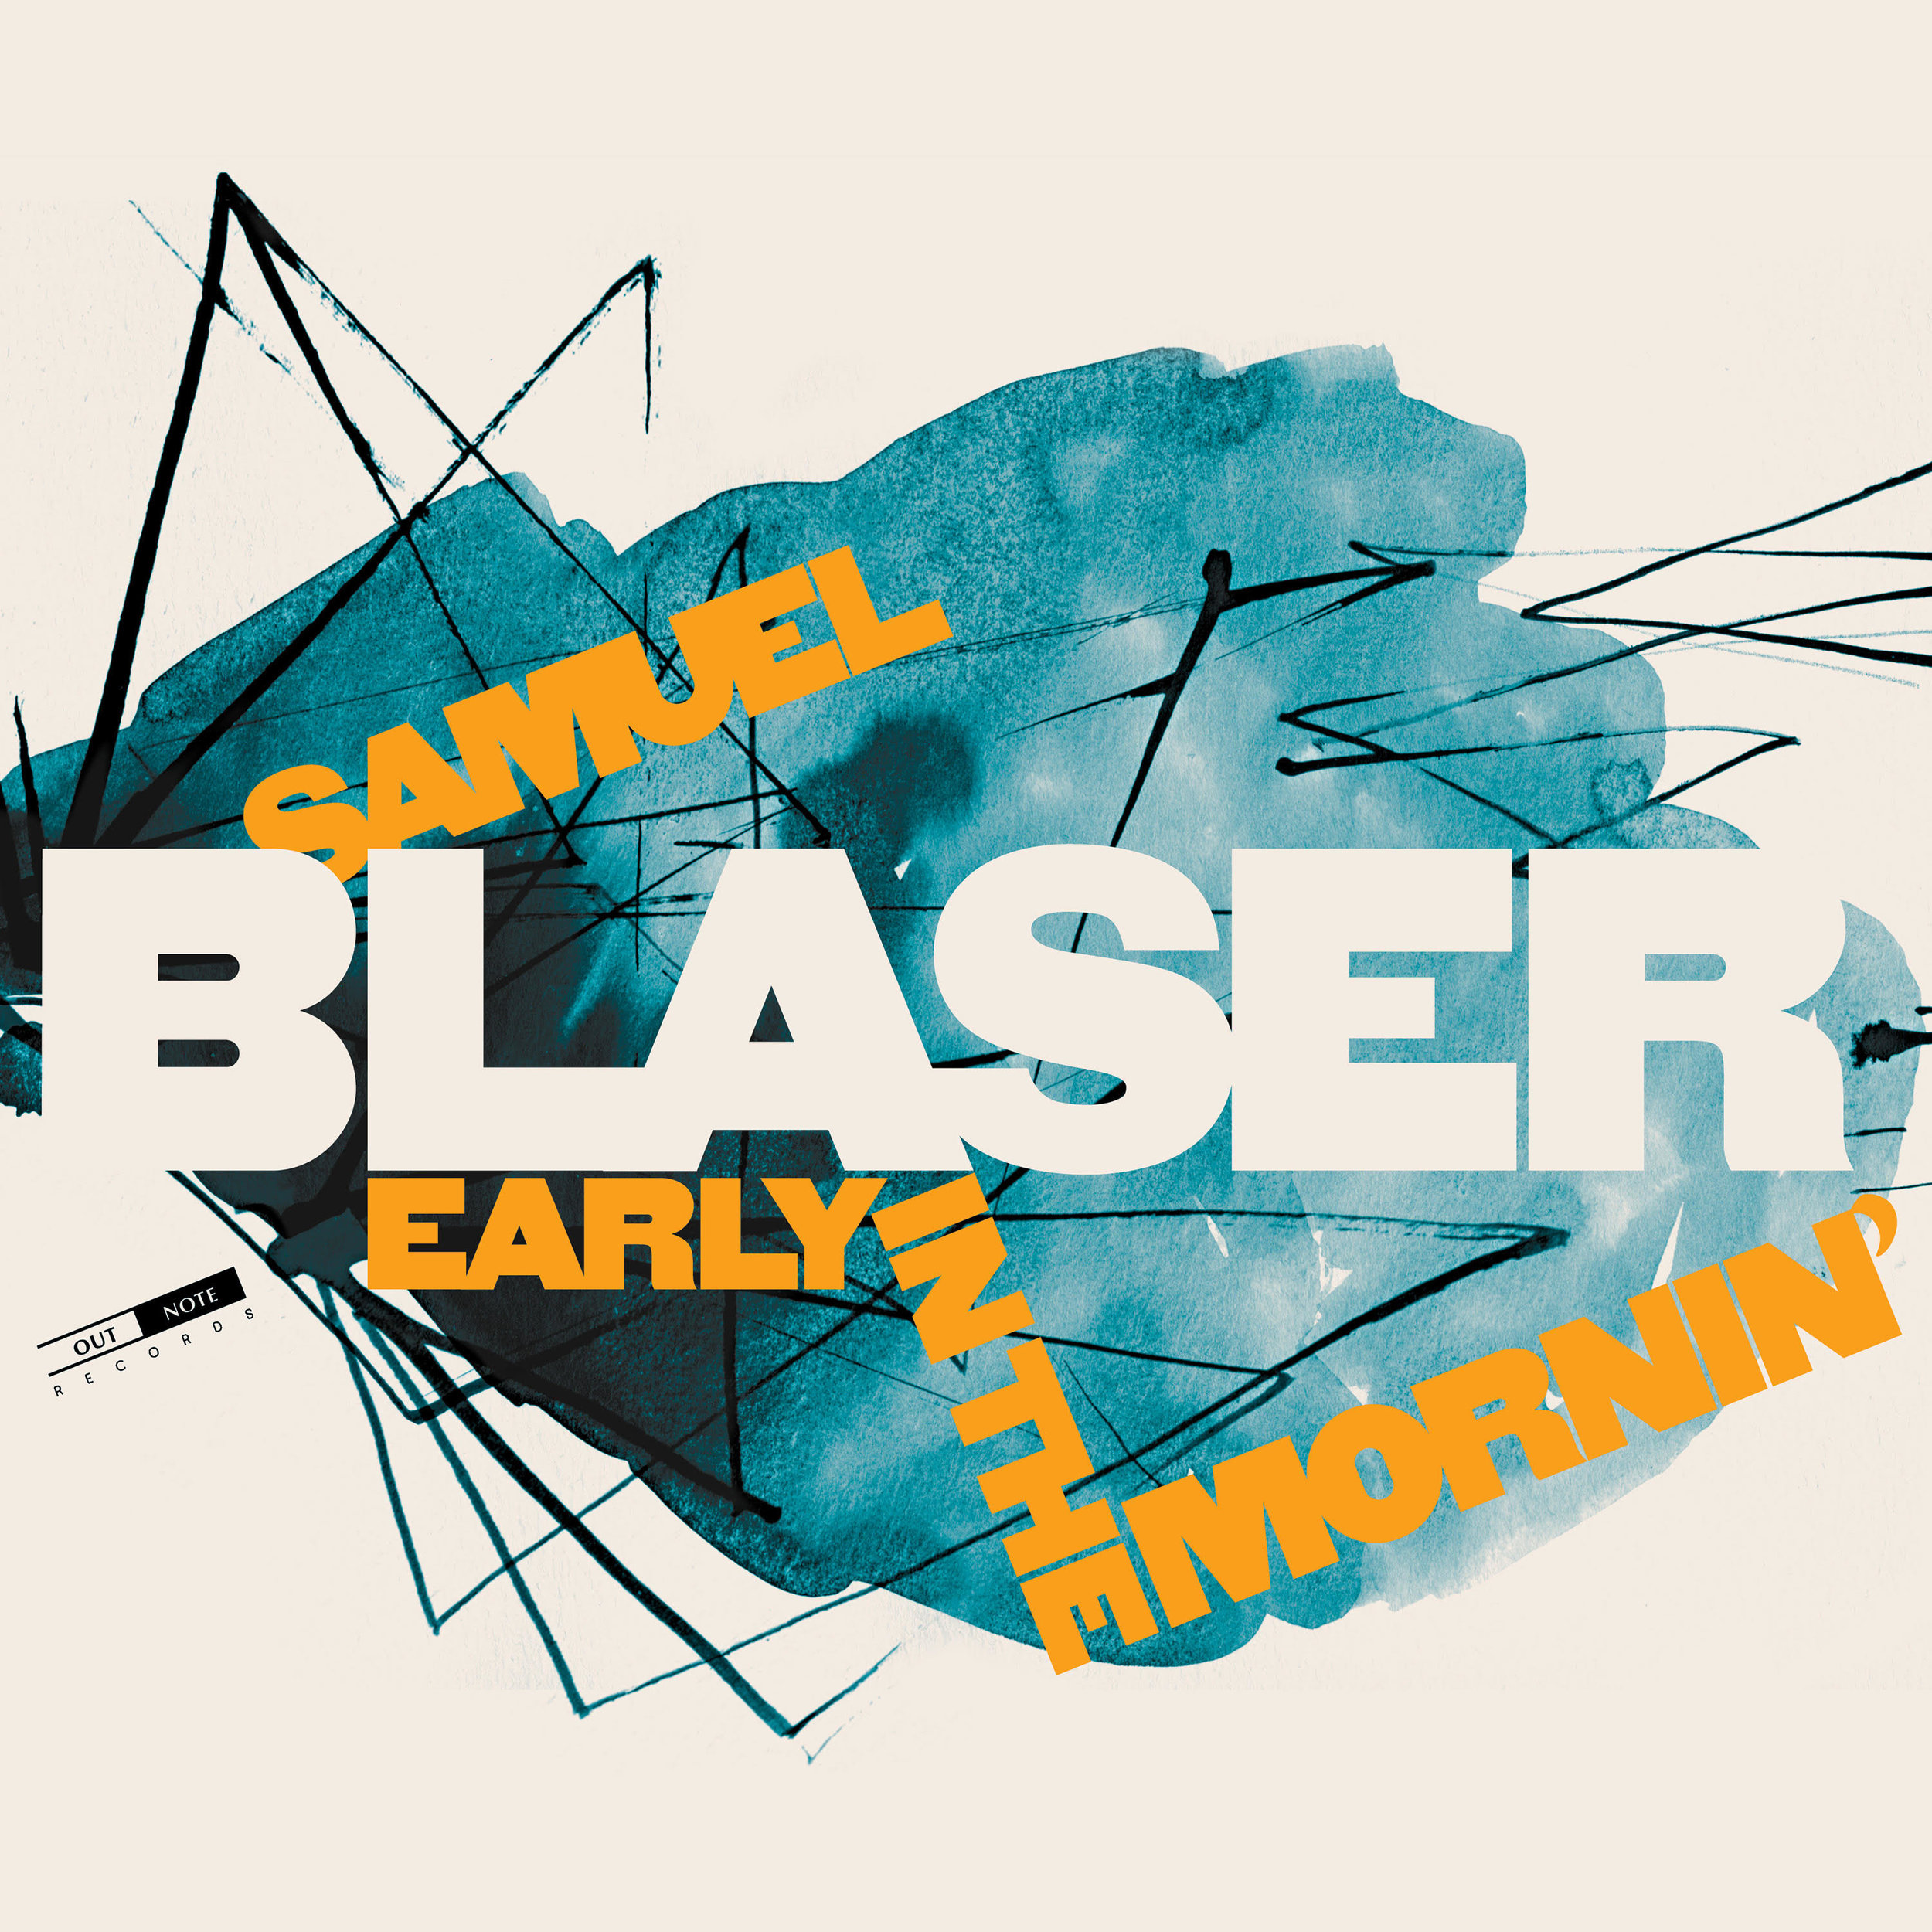 SAMUEL BLASER   EARLY IN THE MORNIN (2018)  BUY SHEET MUSIC + CD SIGNED:    €70.00